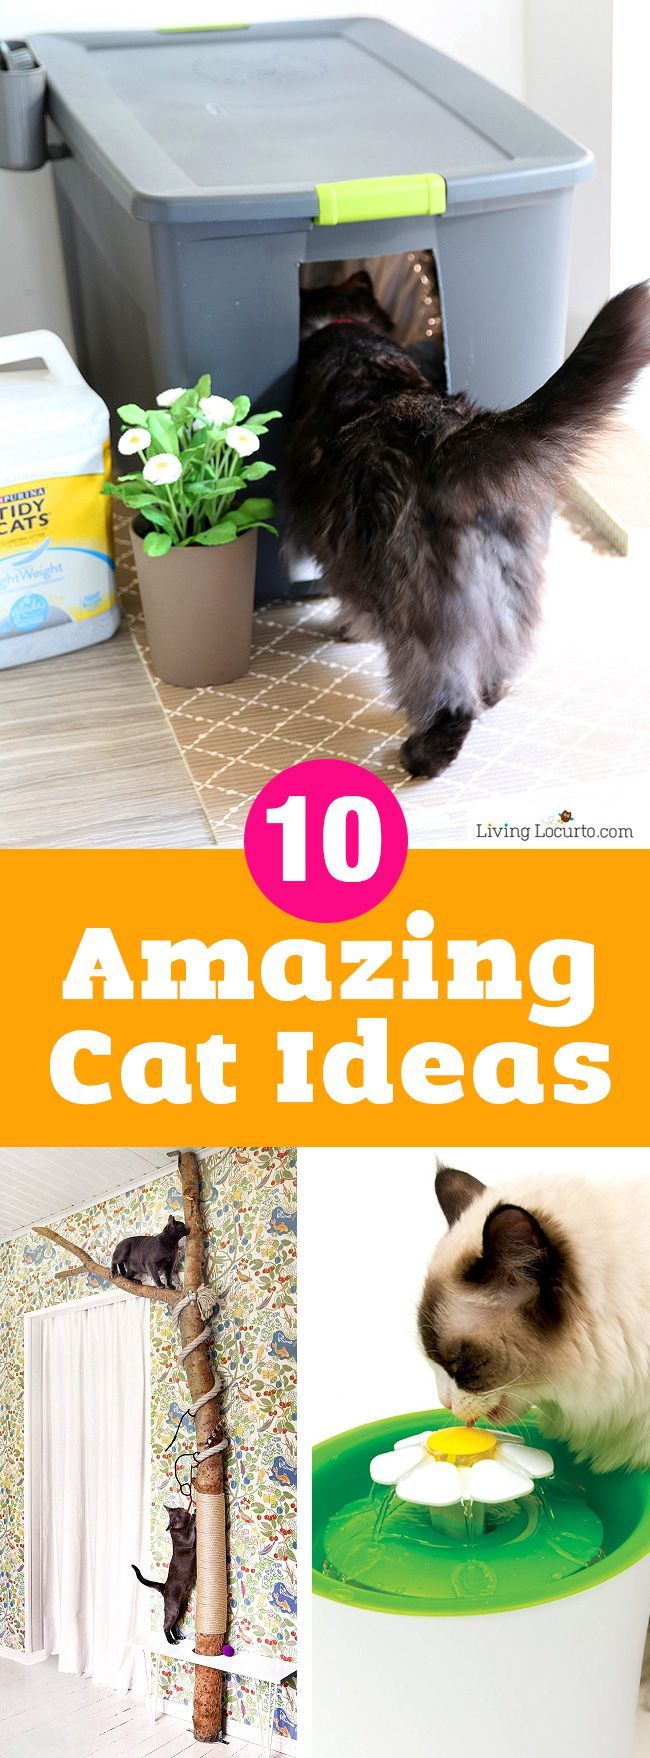 10 Amazing Ways to Spoil Your Cat! Fun DIY cat toys, kitty litter ideas and othe… – pinnme.com/… #amazing #cat #DIY #fun #Ideas #kitty #Litter #ot…